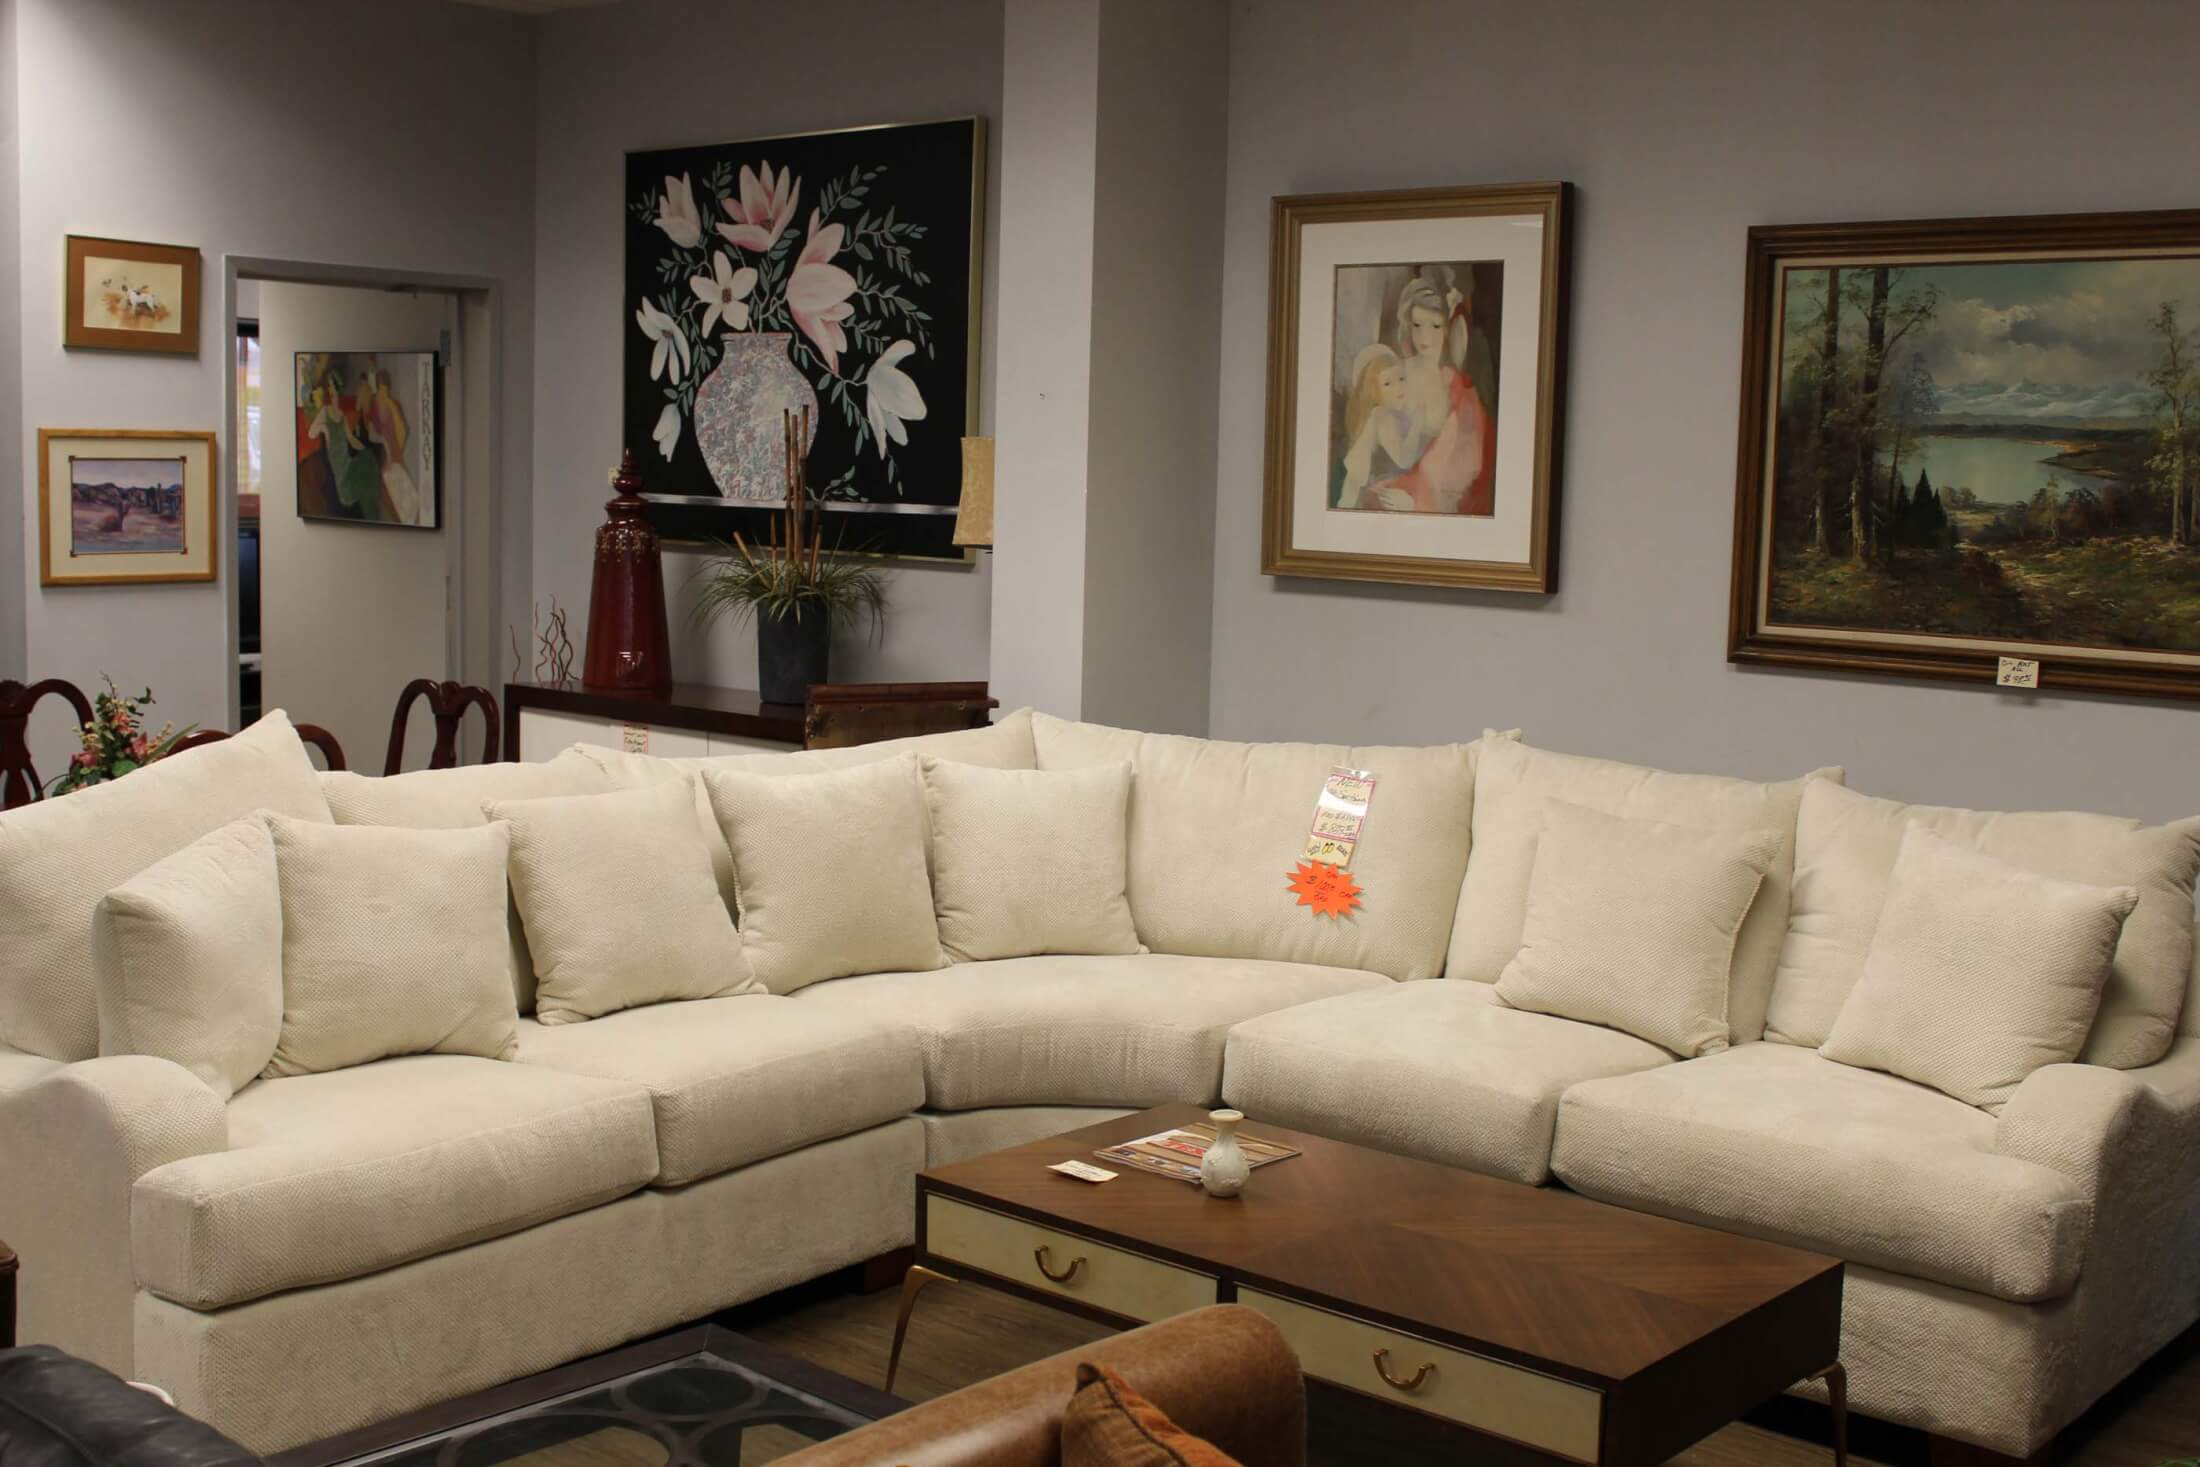 Houston's best-kept furniture shopping secret: Houston Furniture Bank's Outlet Center - Houston Furniture Bank